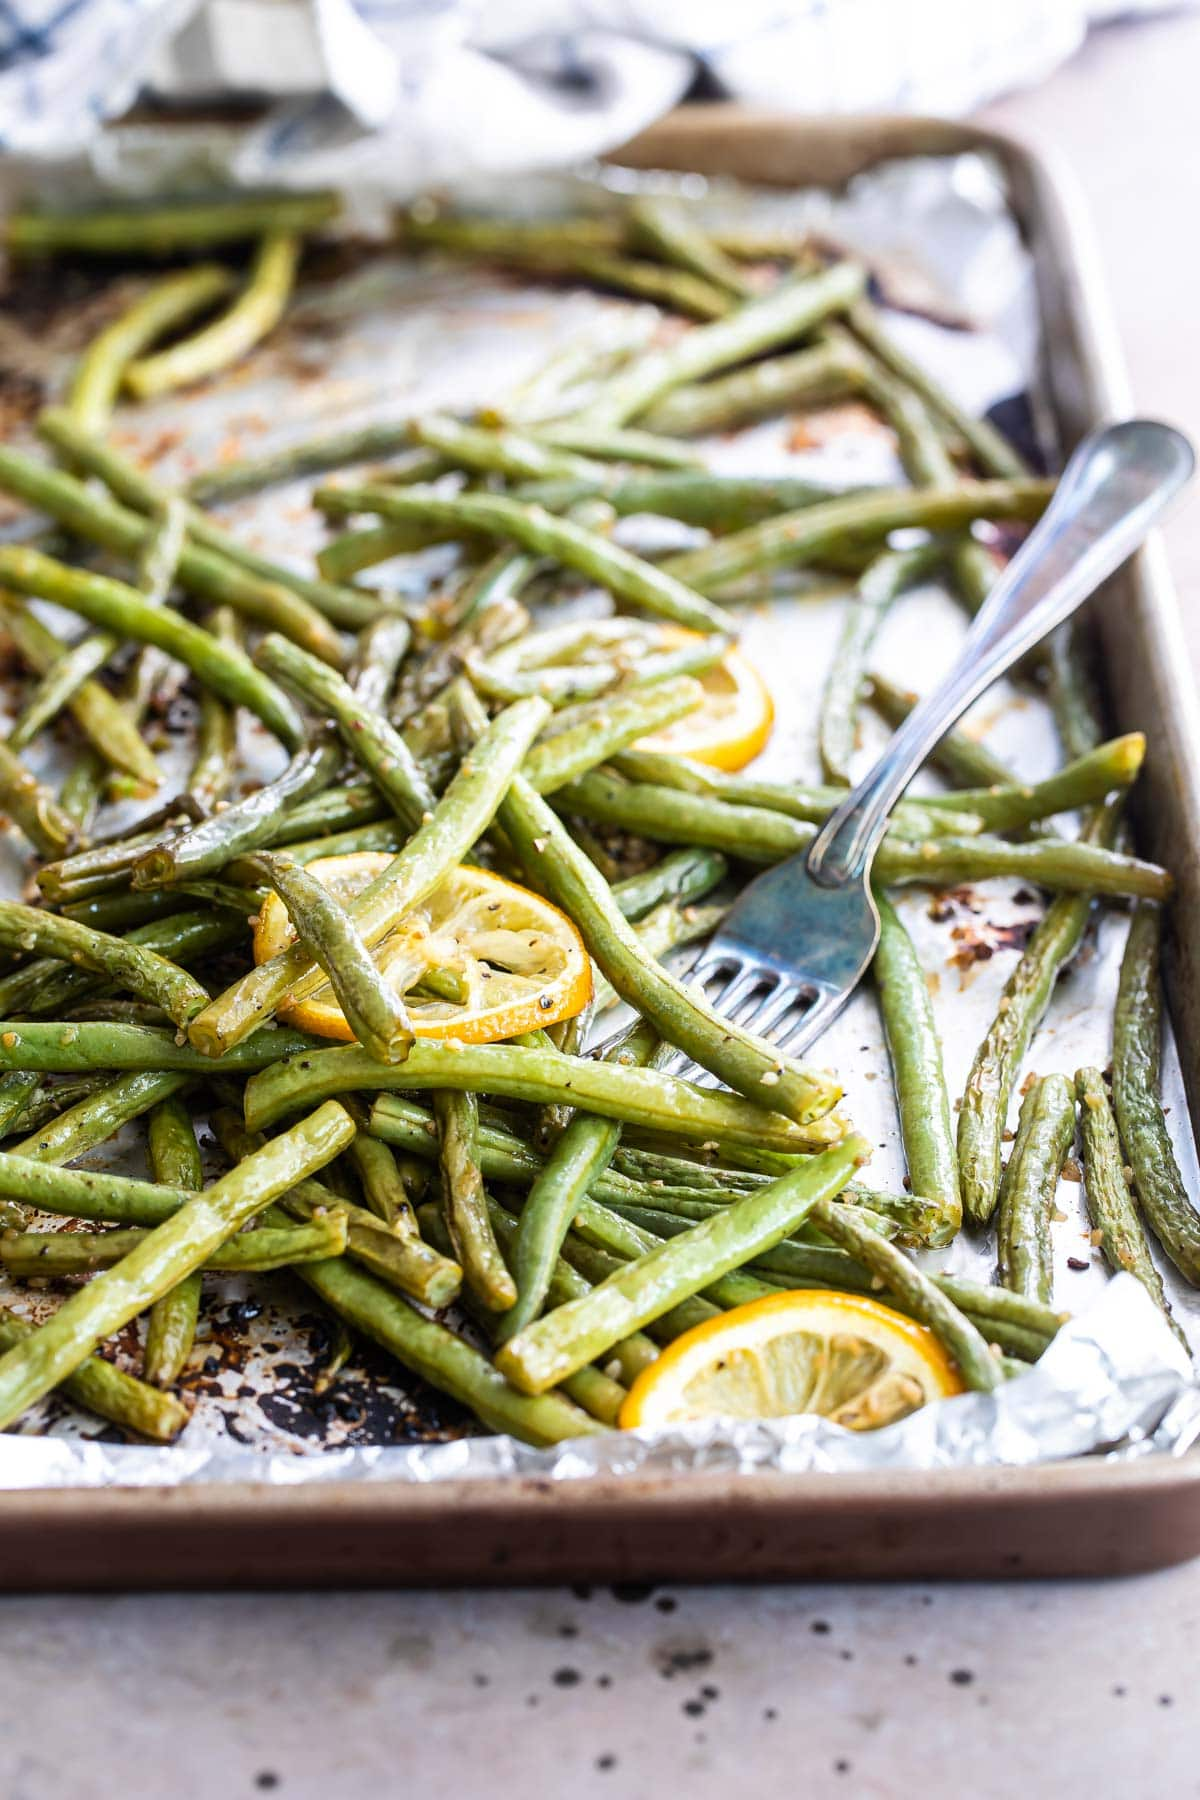 Roasted green beans on a baking sheet with lemon garnish.